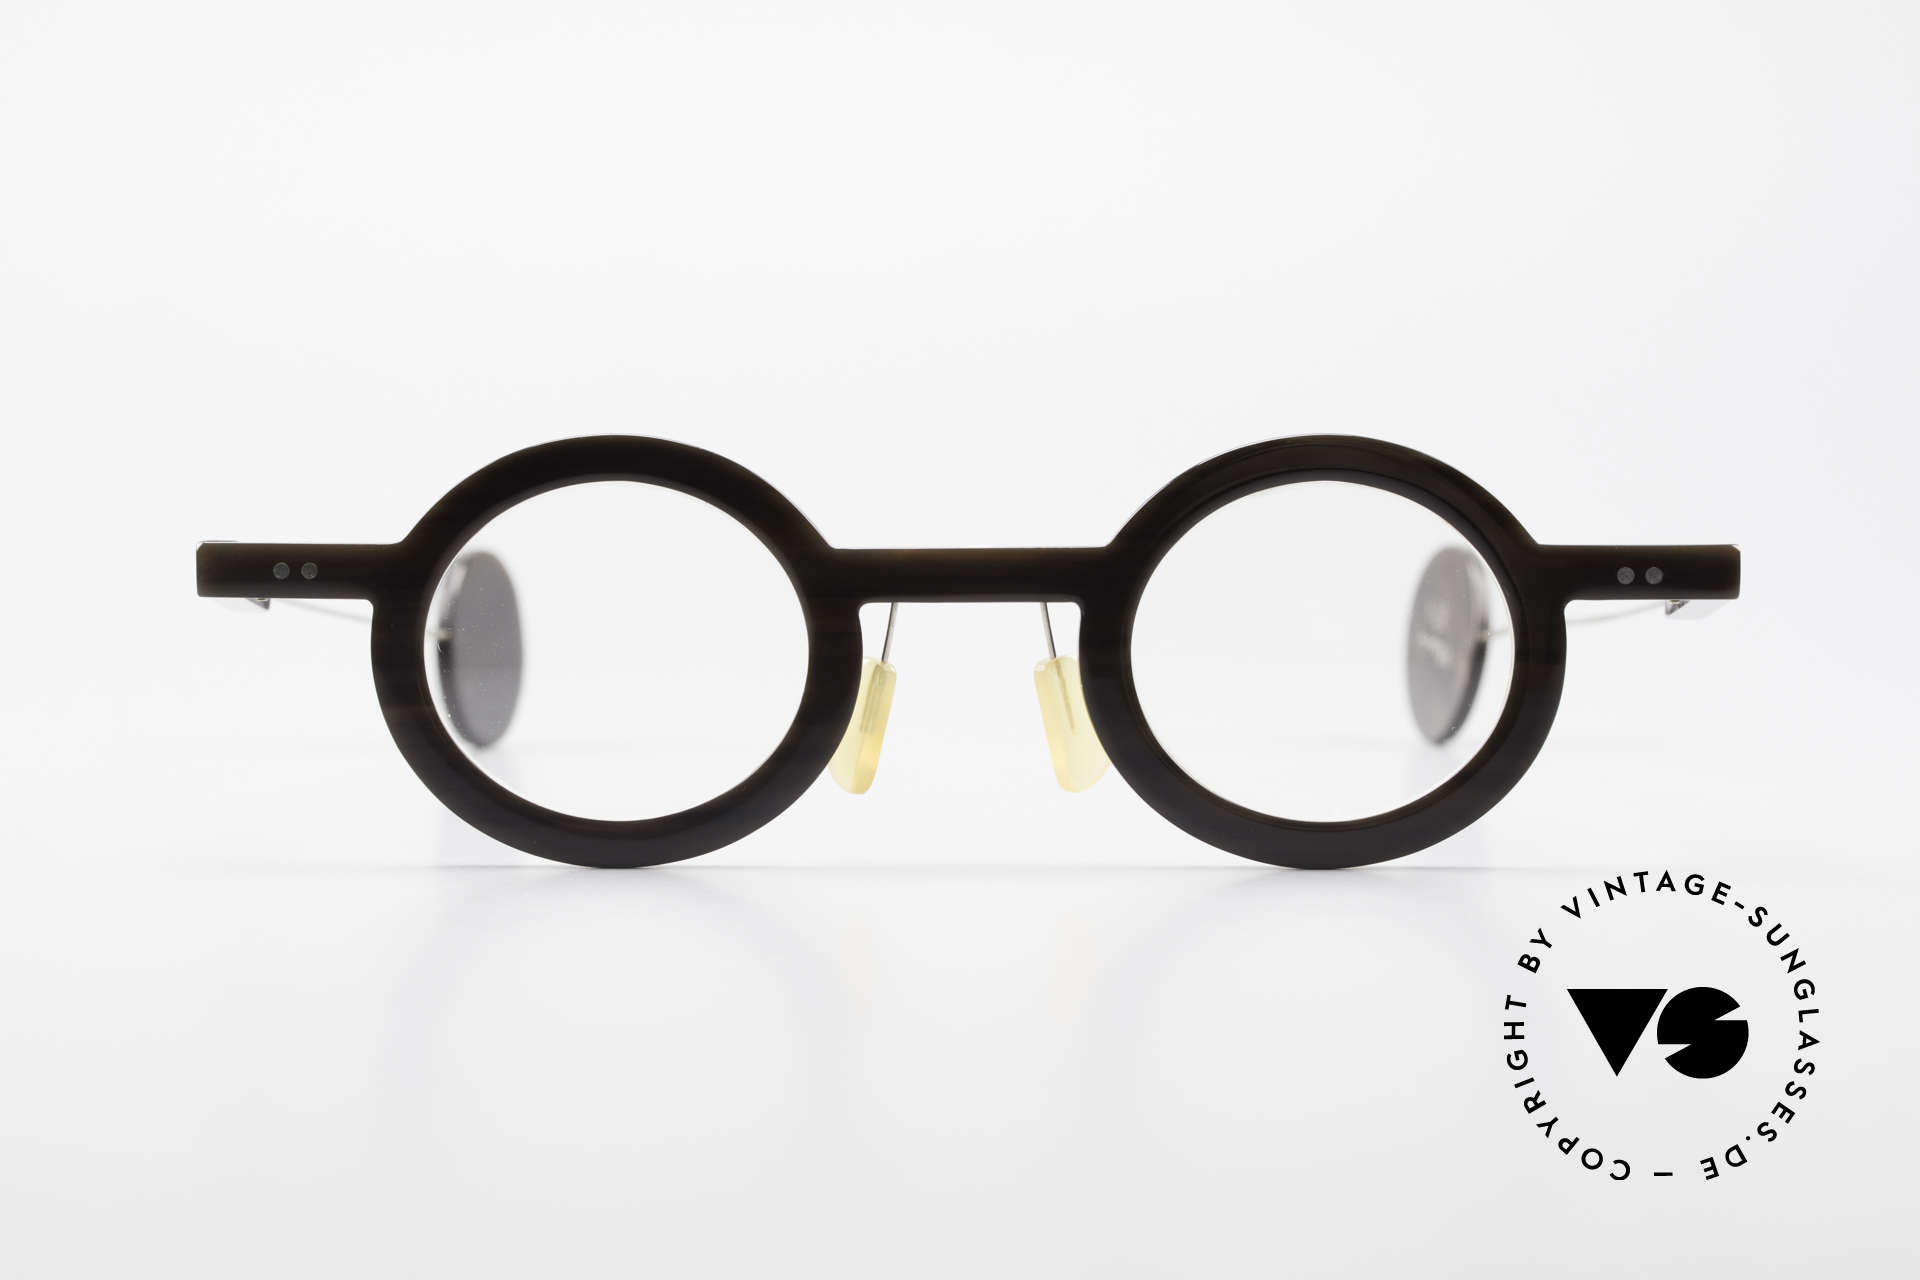 P. Klenk Rugby 014 Genuine Horn Glasses Round, precious handmade rarity (made of genuine buffalo horn), Made for Men